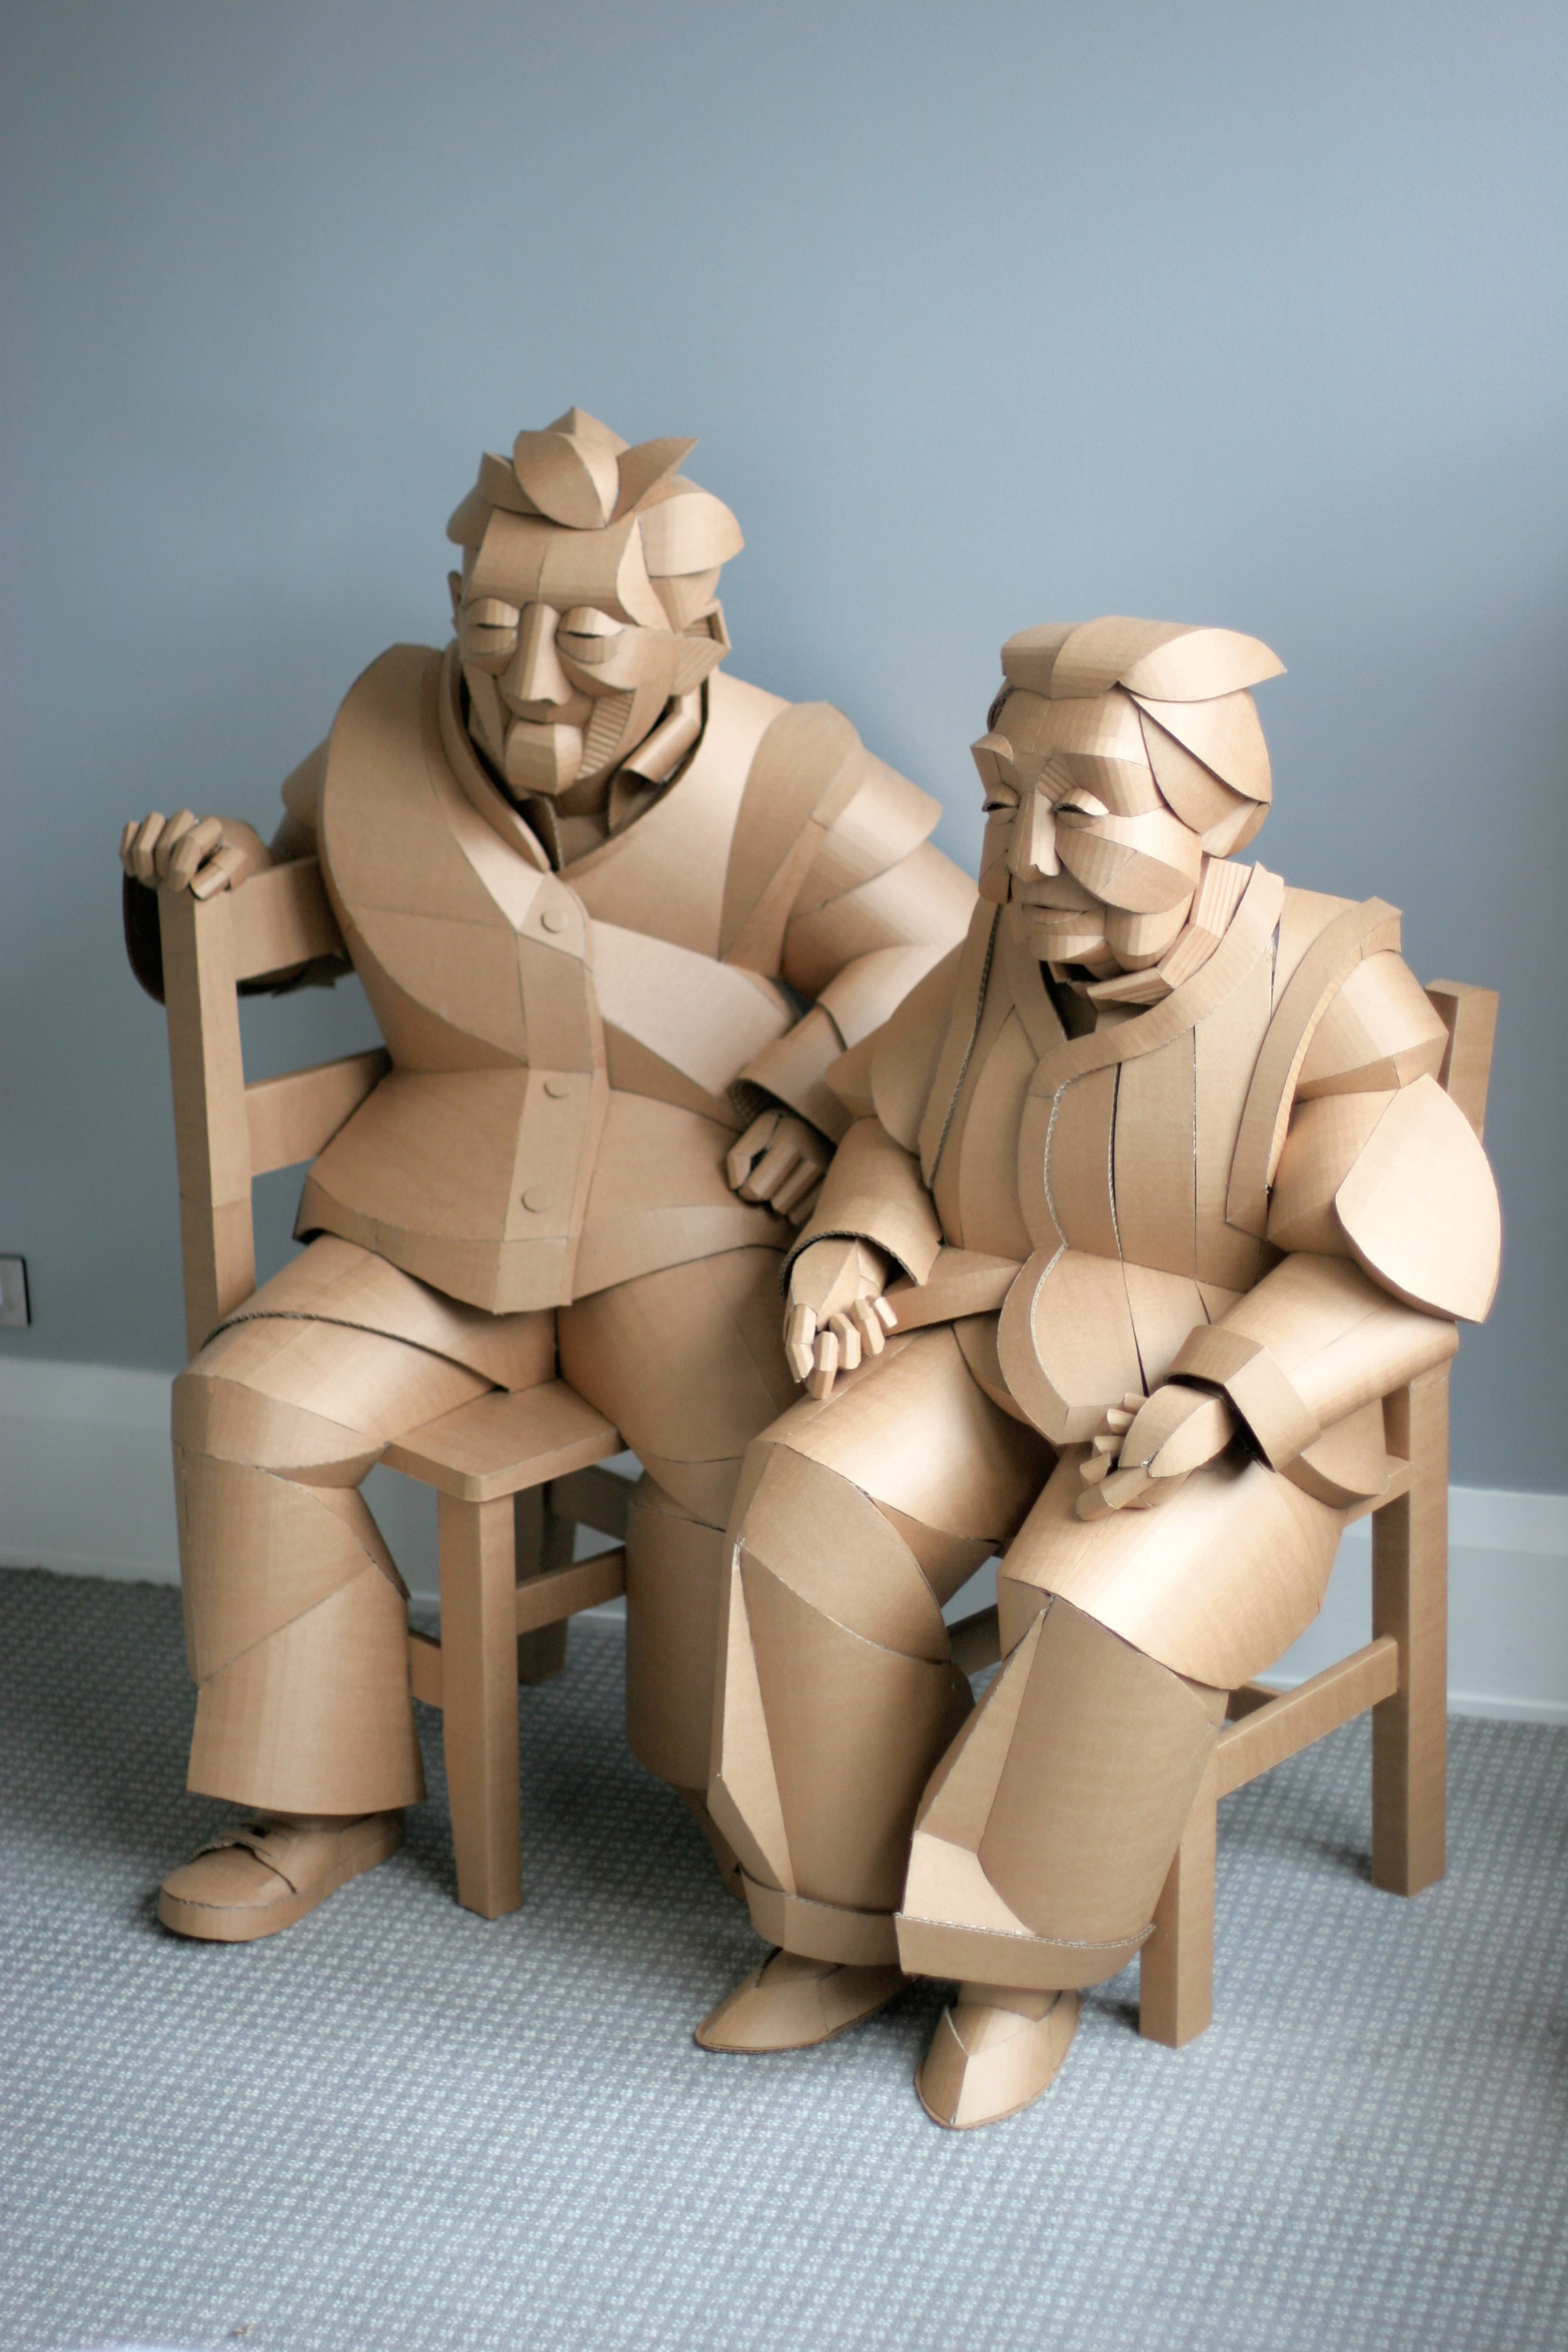 Life-Size Cardboard Sculptures of Chinese Villagers Tap Into Artist Warren King's Ancestral Heritage